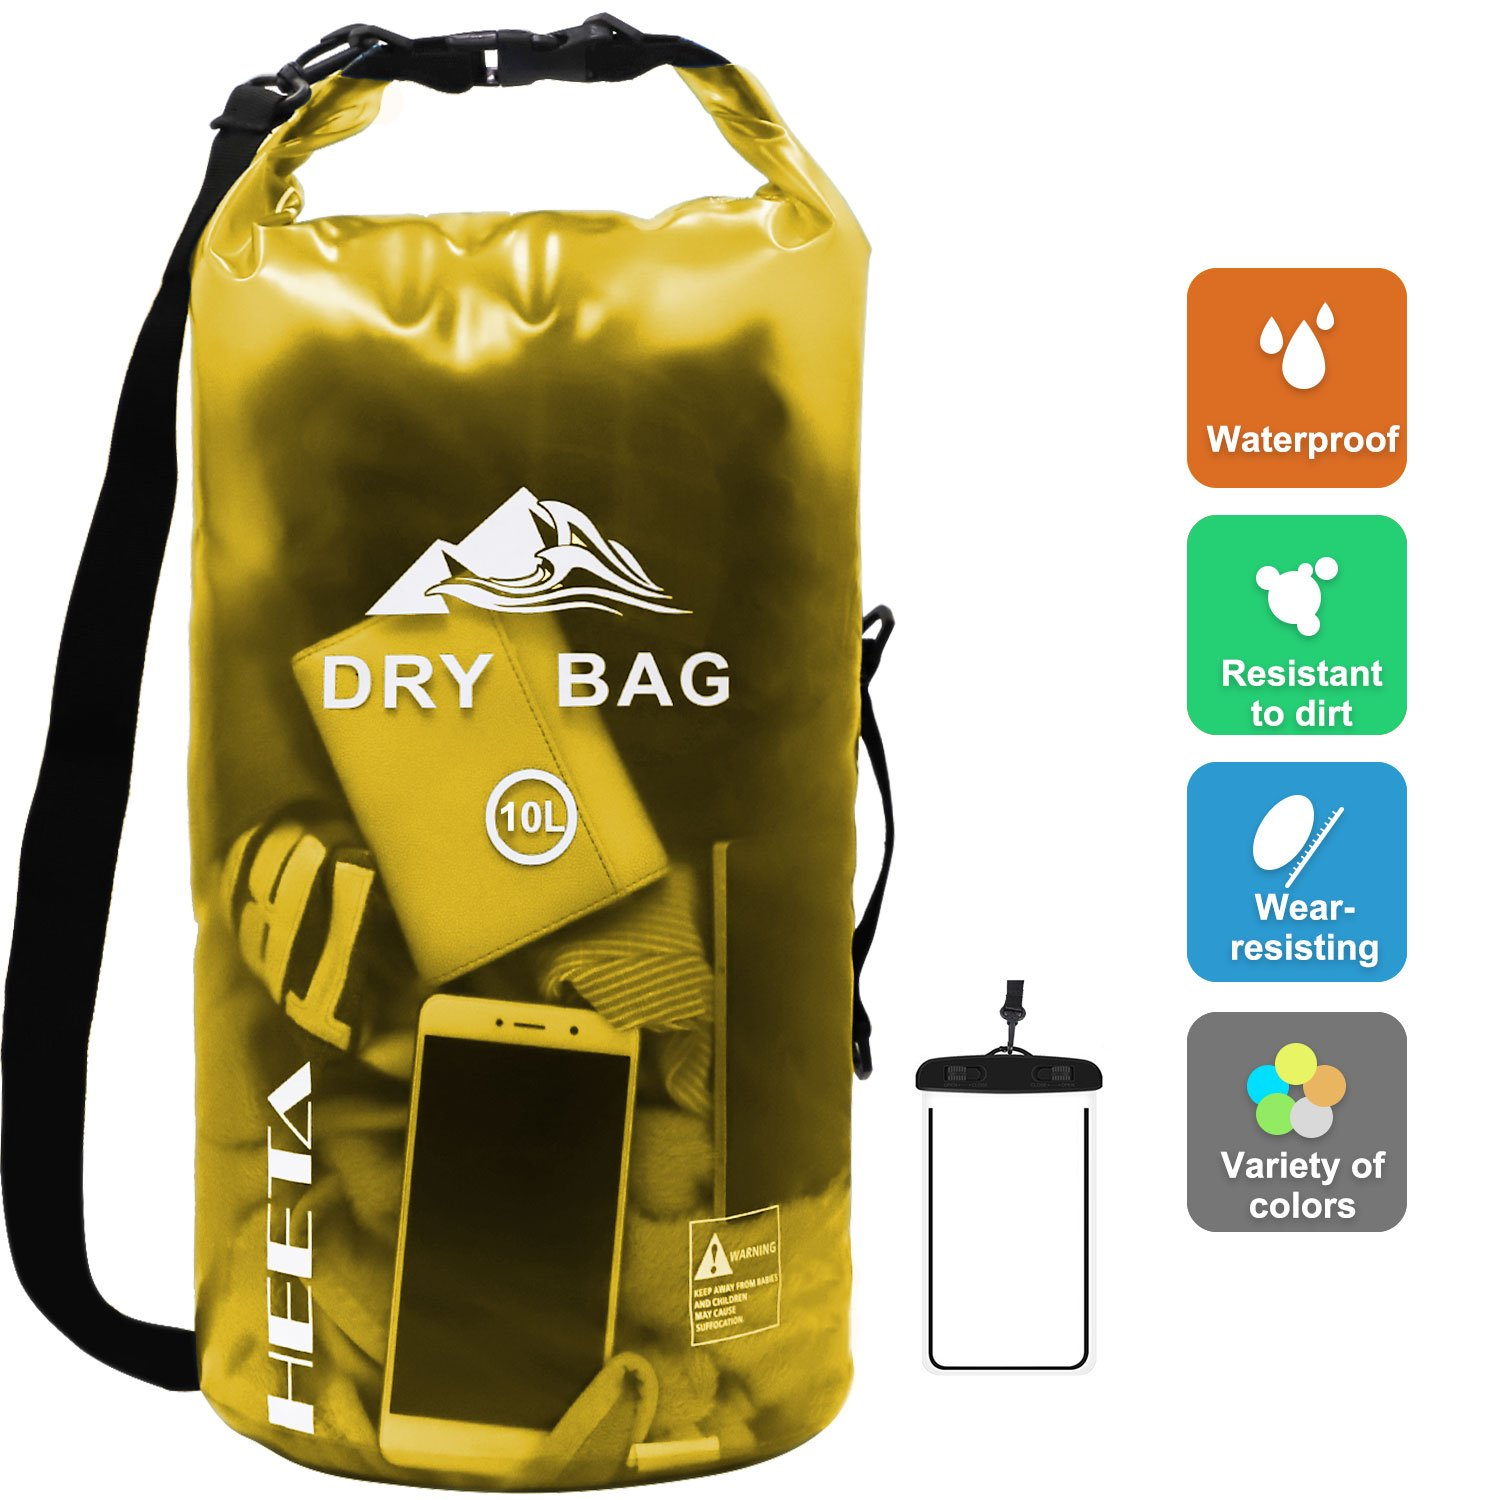 HEETA Waterproof Dry Bag for Women Men, Roll Top Lightweight Dry Storage Bag Backpack with Phone Case for Travel, Swimming, Boating, Kayaking, Camping and Beach, Transparent Yellow 10L by HEETA